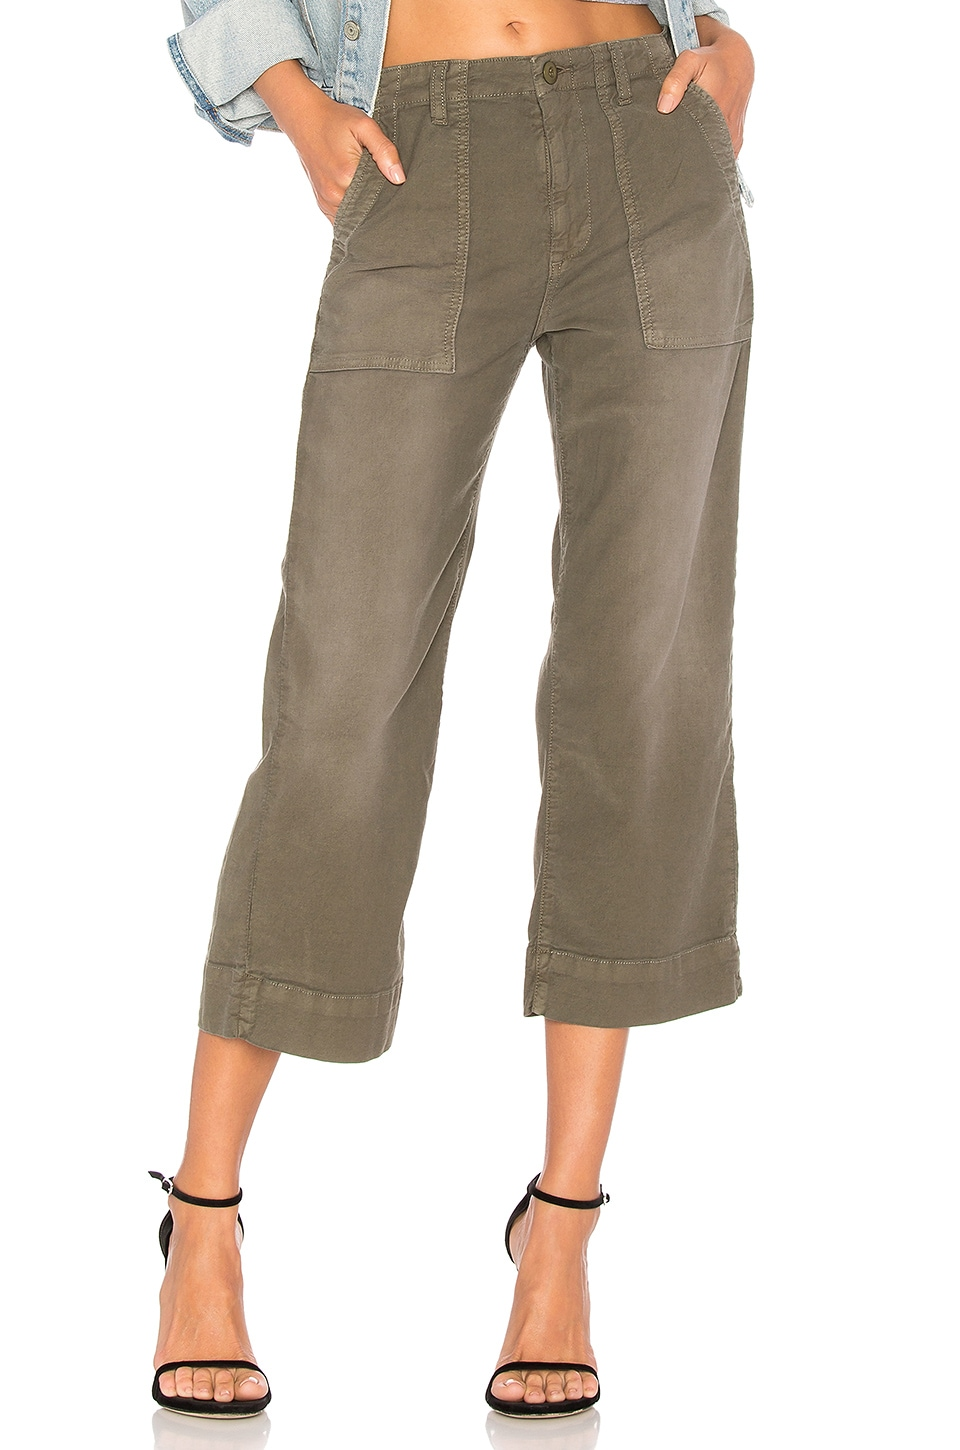 Joie Painter Straight Crop in Washed Deep Fatigue